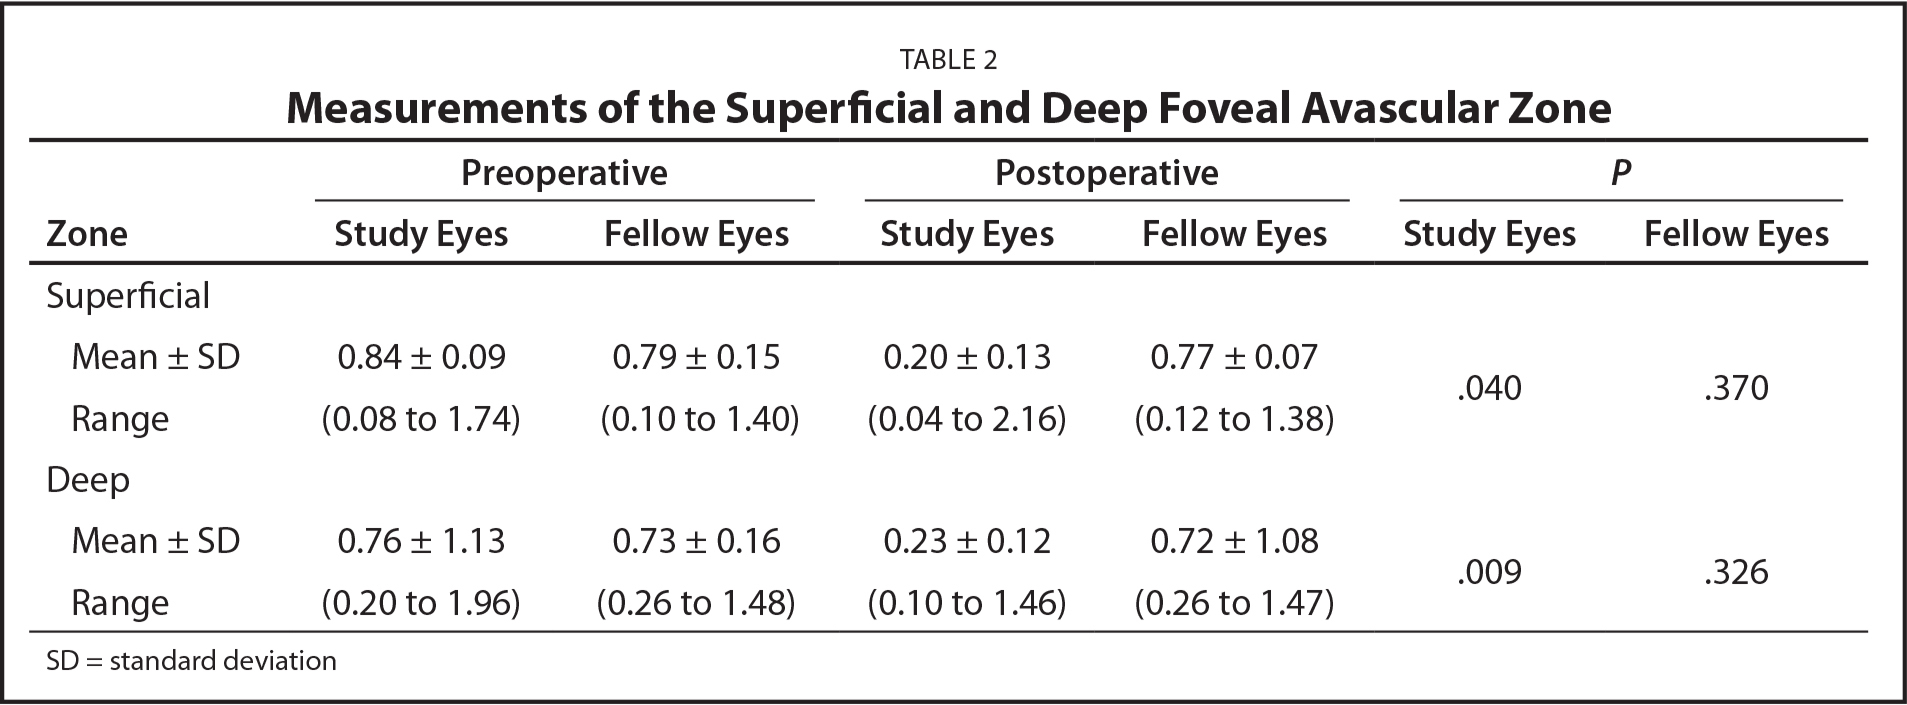 Measurements of the Superficial and Deep Foveal Avascular Zone